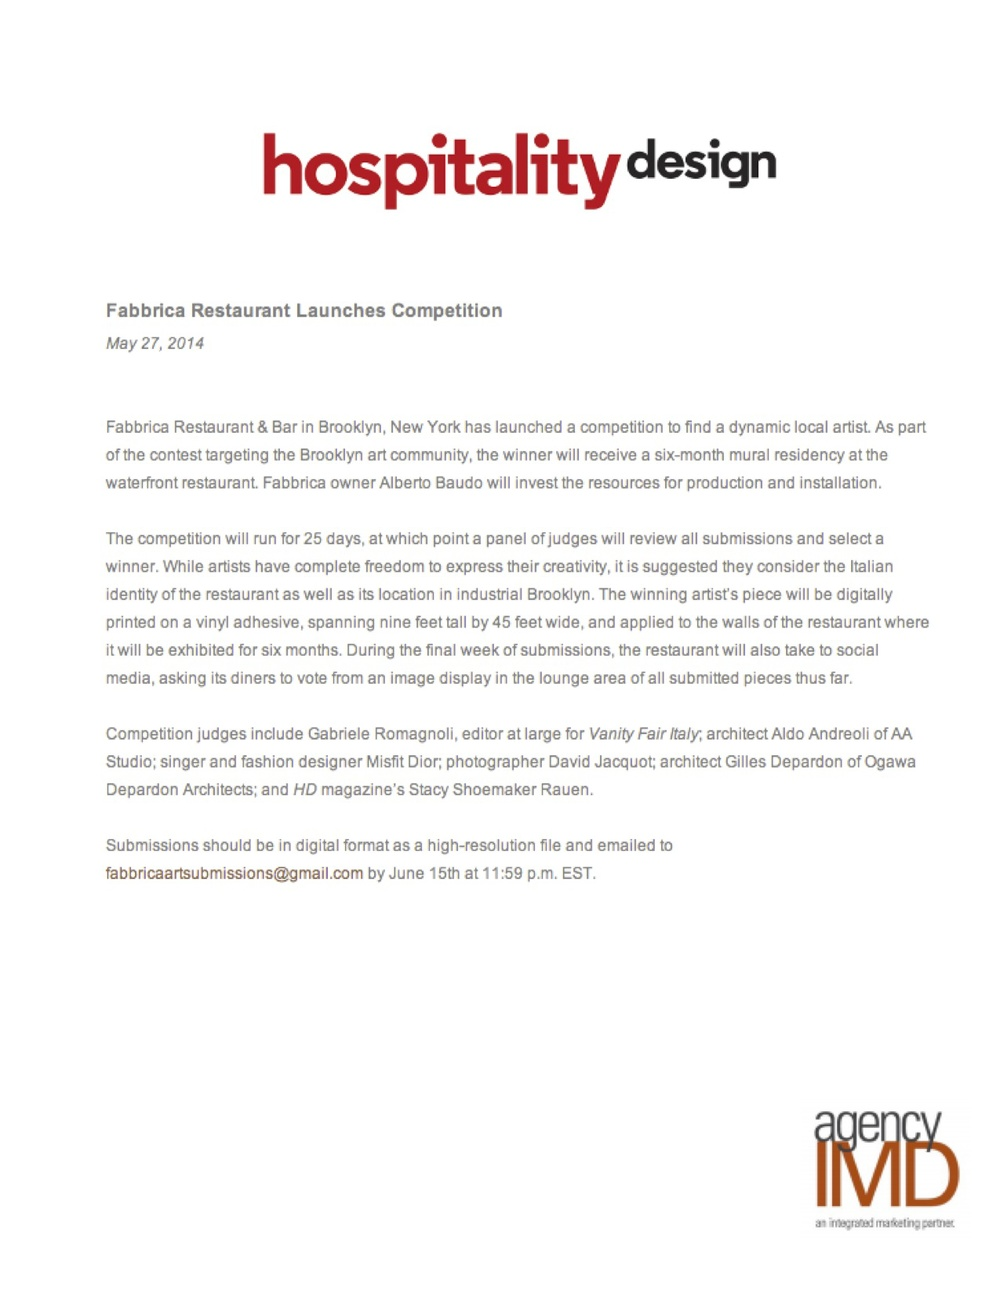 Fabrica-Hospitalityanddesign-May27,2014.jpg